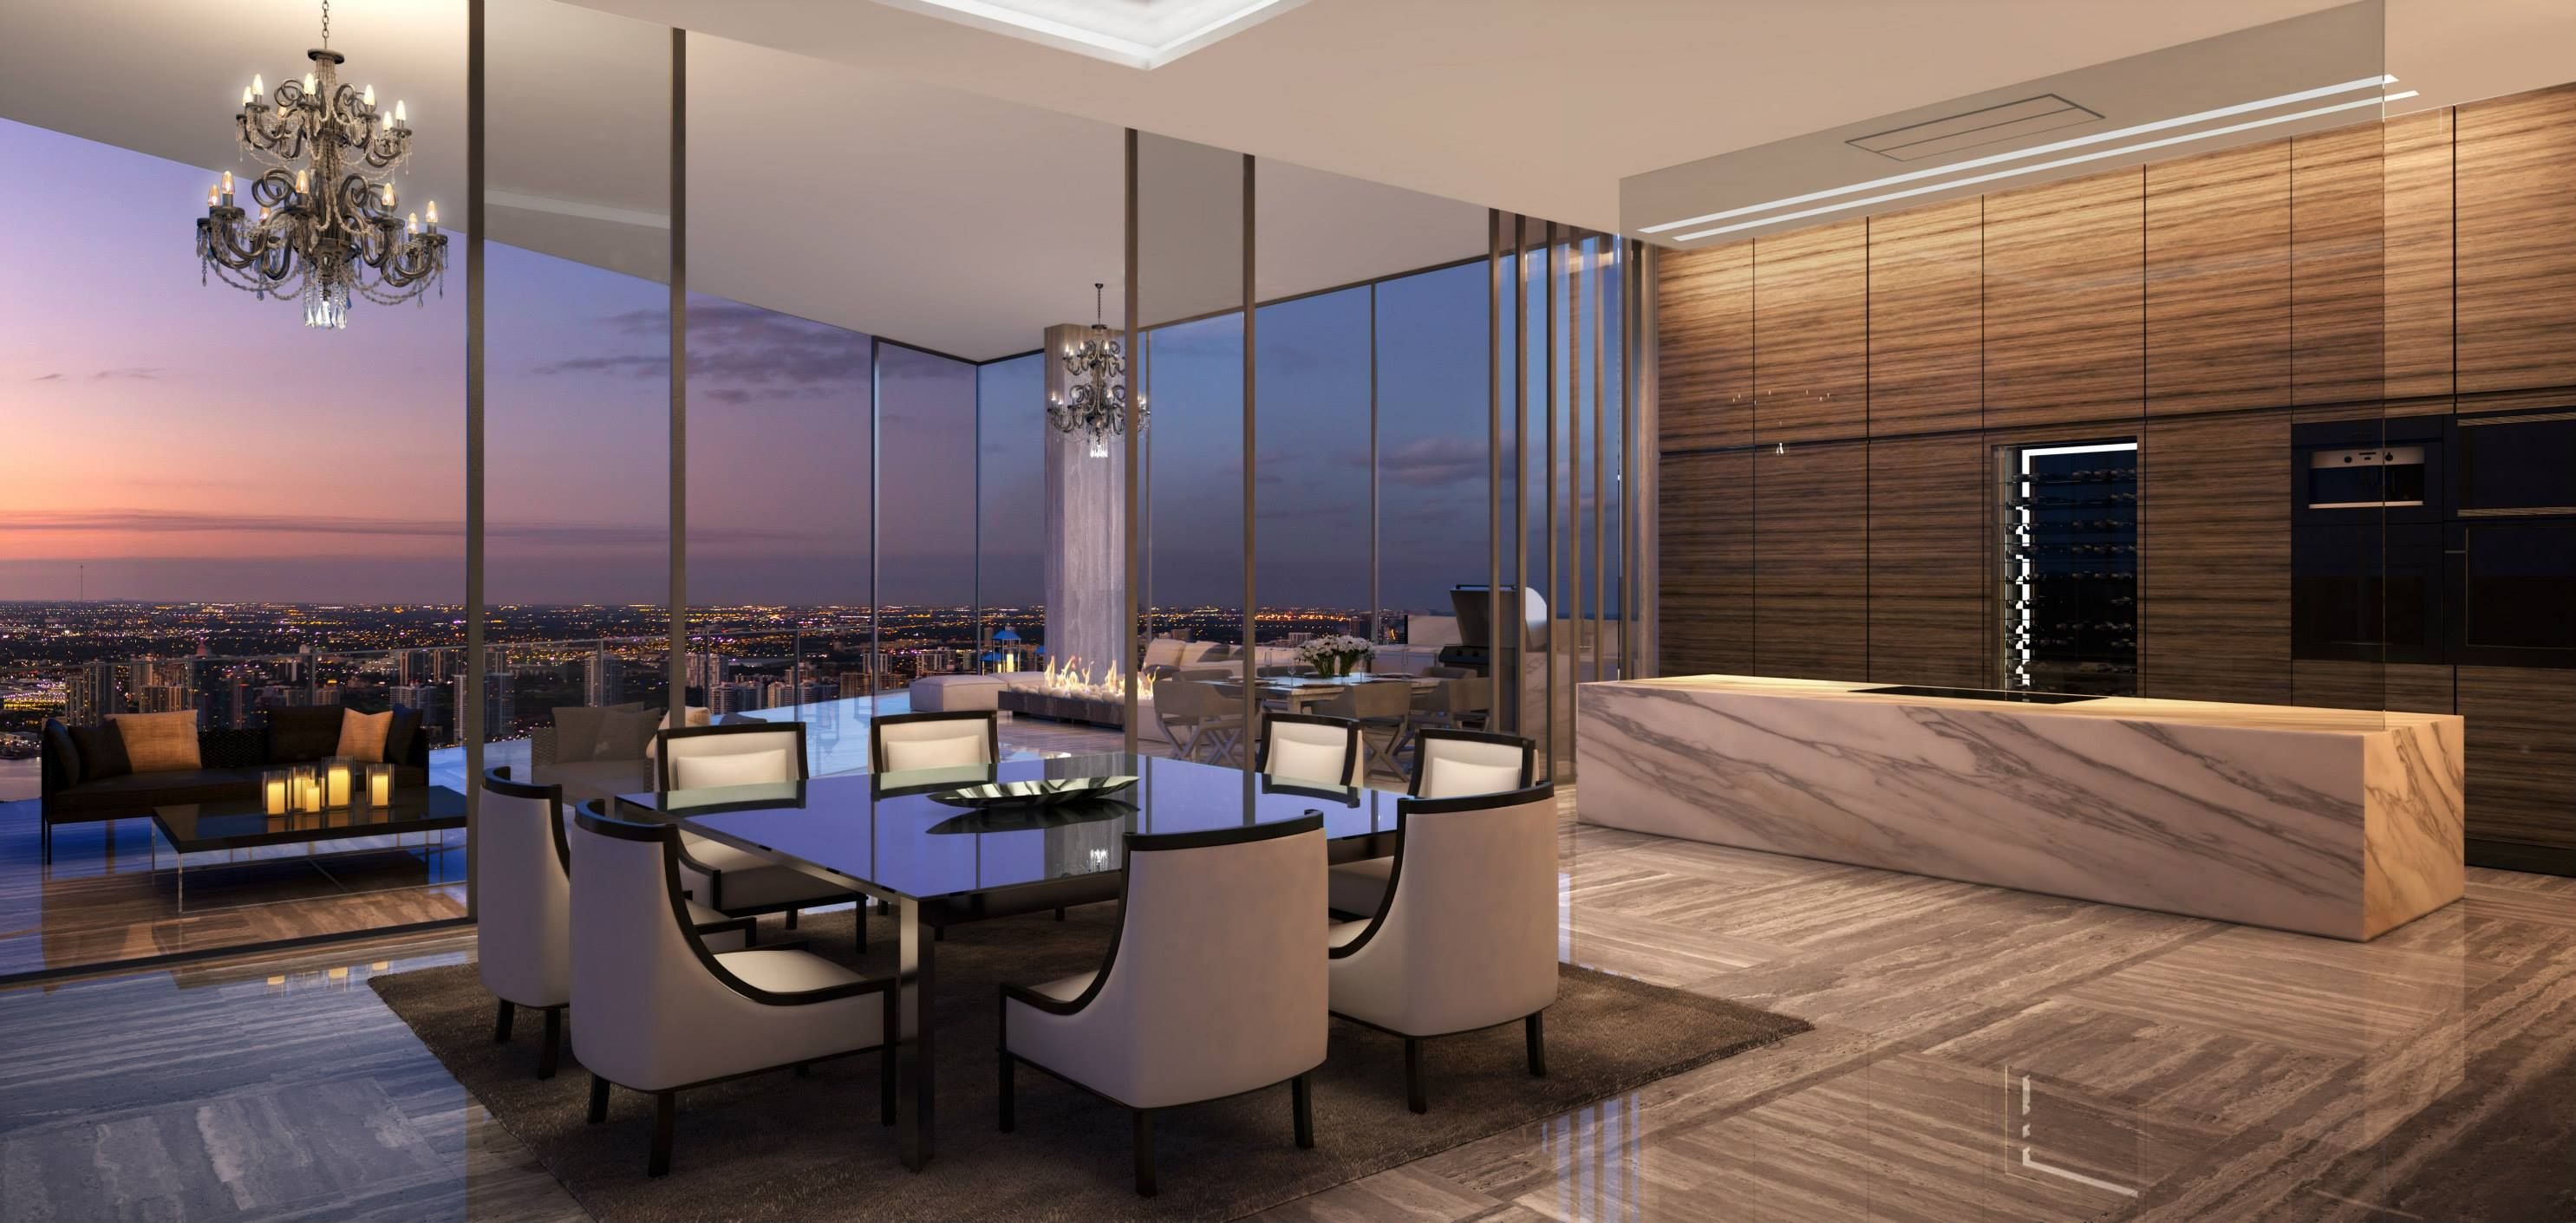 New Renderings Of Muse Sunny Isles Released   Arraes Group   Luxury condo,  Condos for sale, Luxury homes